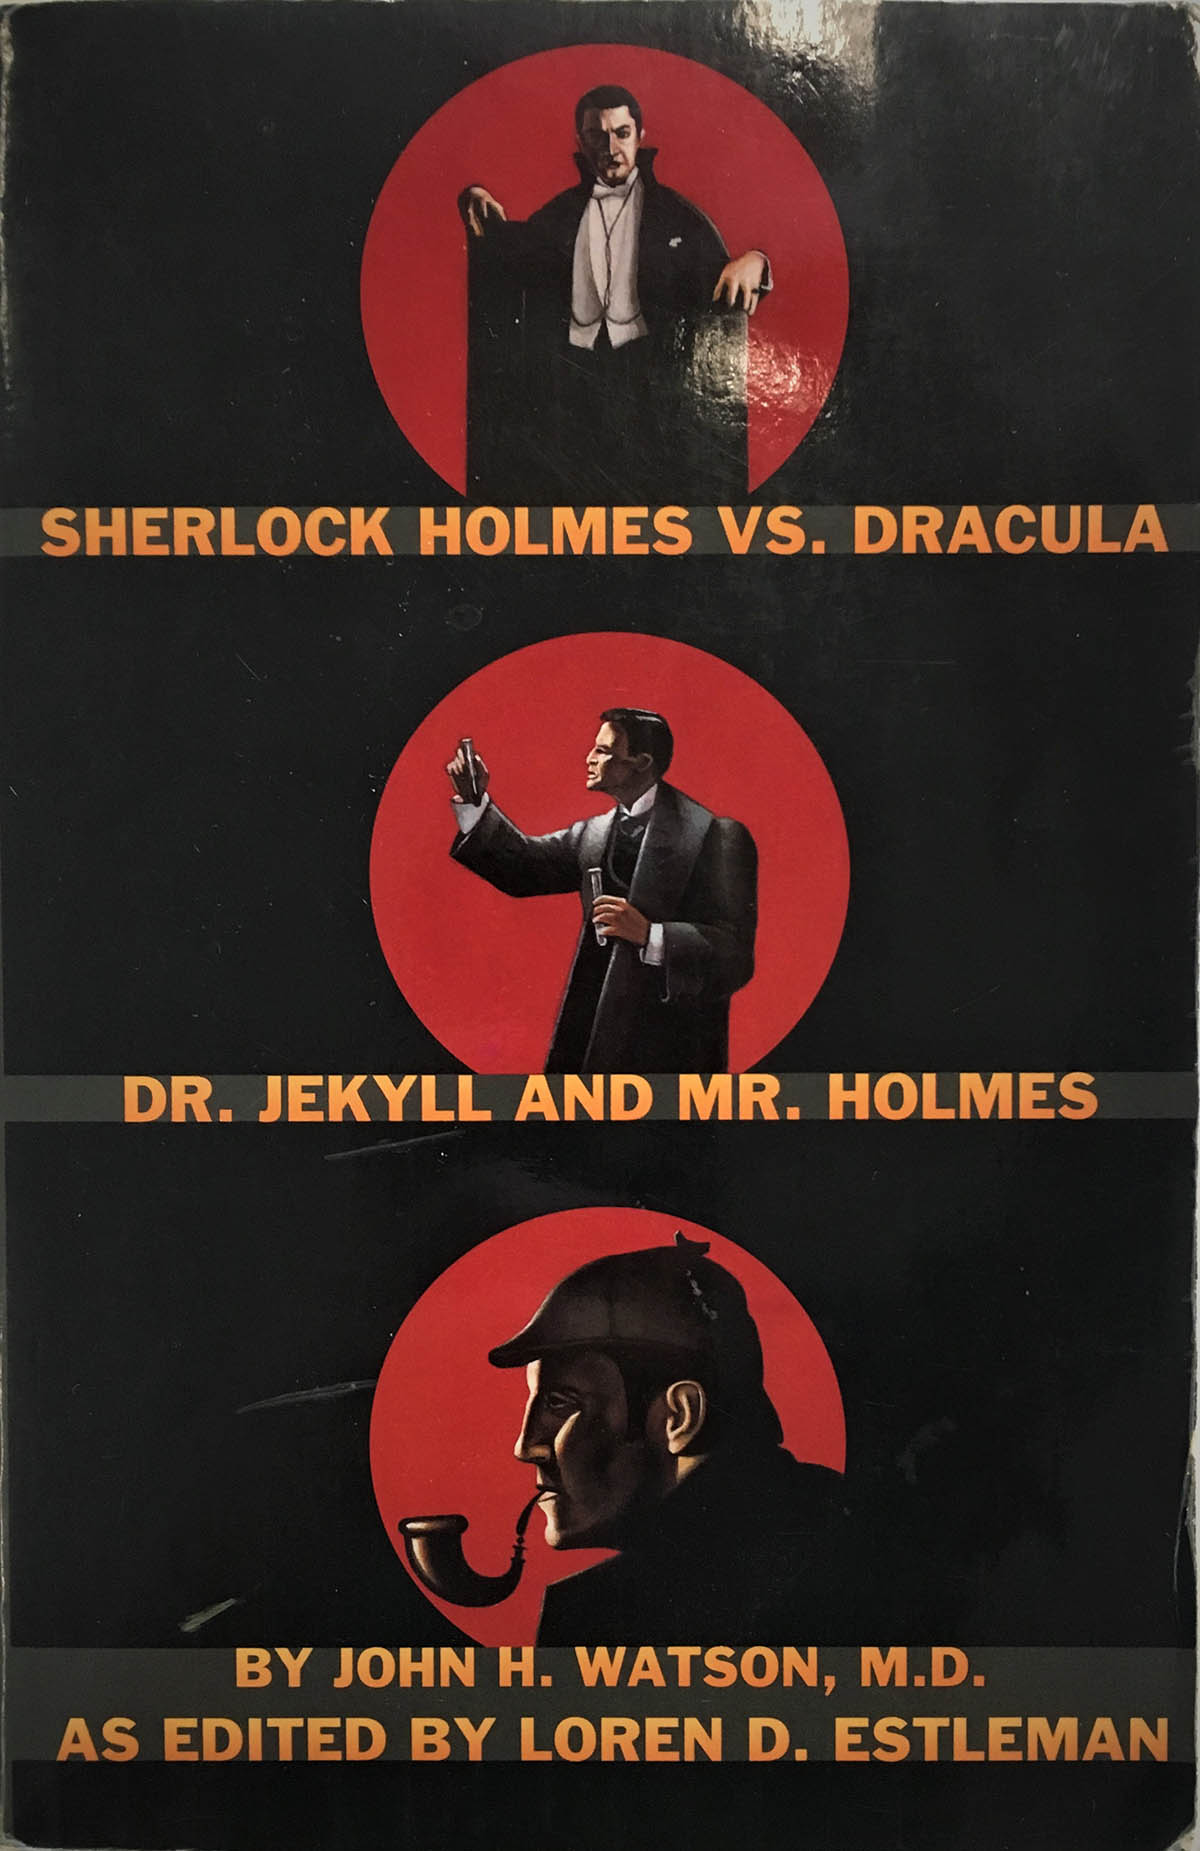 Estleman, Loren D. Sherlock Holmes vs. Dracula, Dr. Jekyll and Mr. Holmes, New York: Quality Paperback Book Club, 1995.